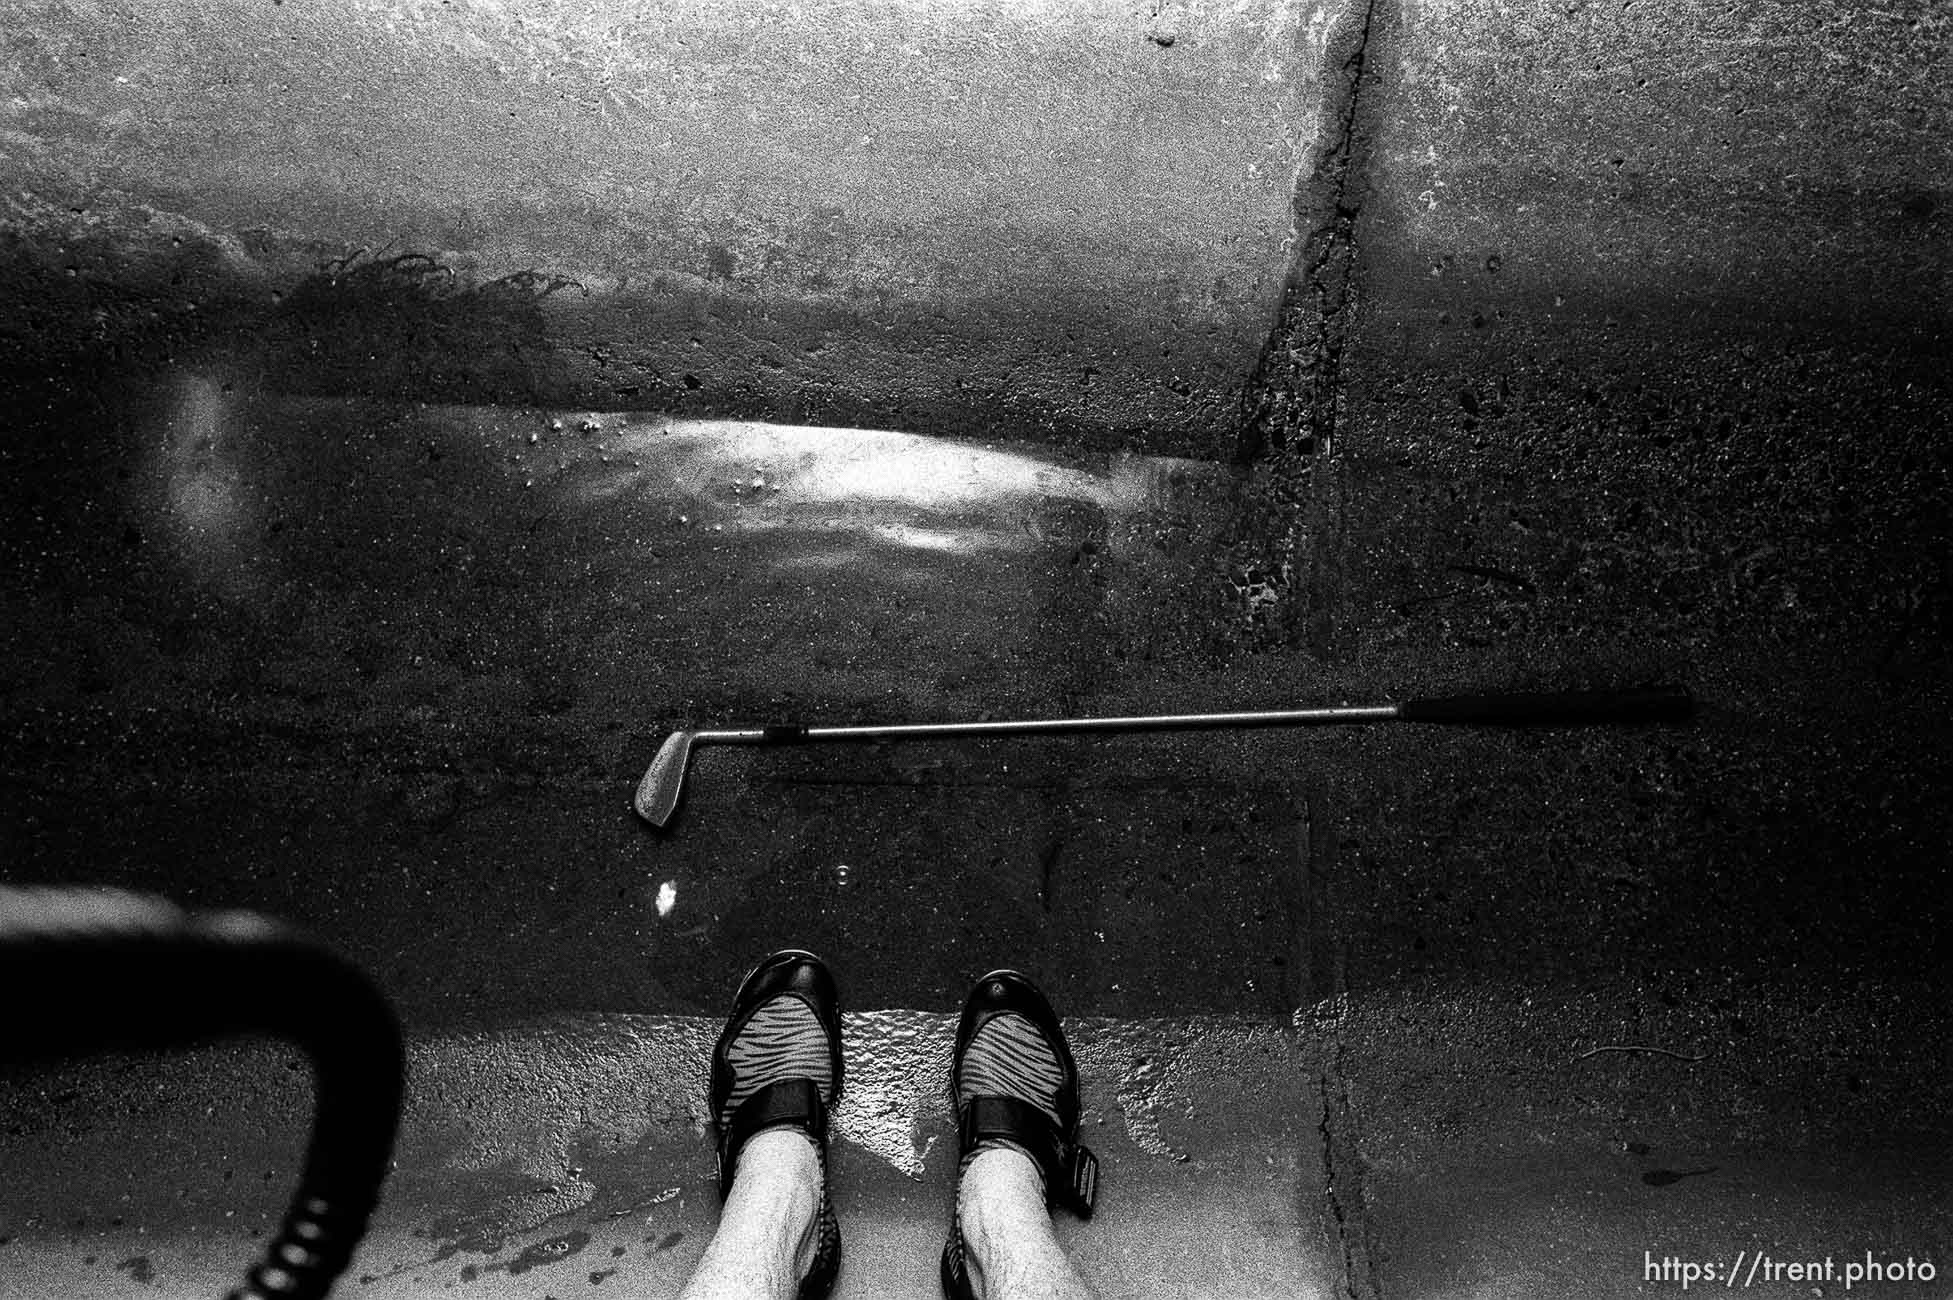 Trent feet and golf club in sewer pipe.